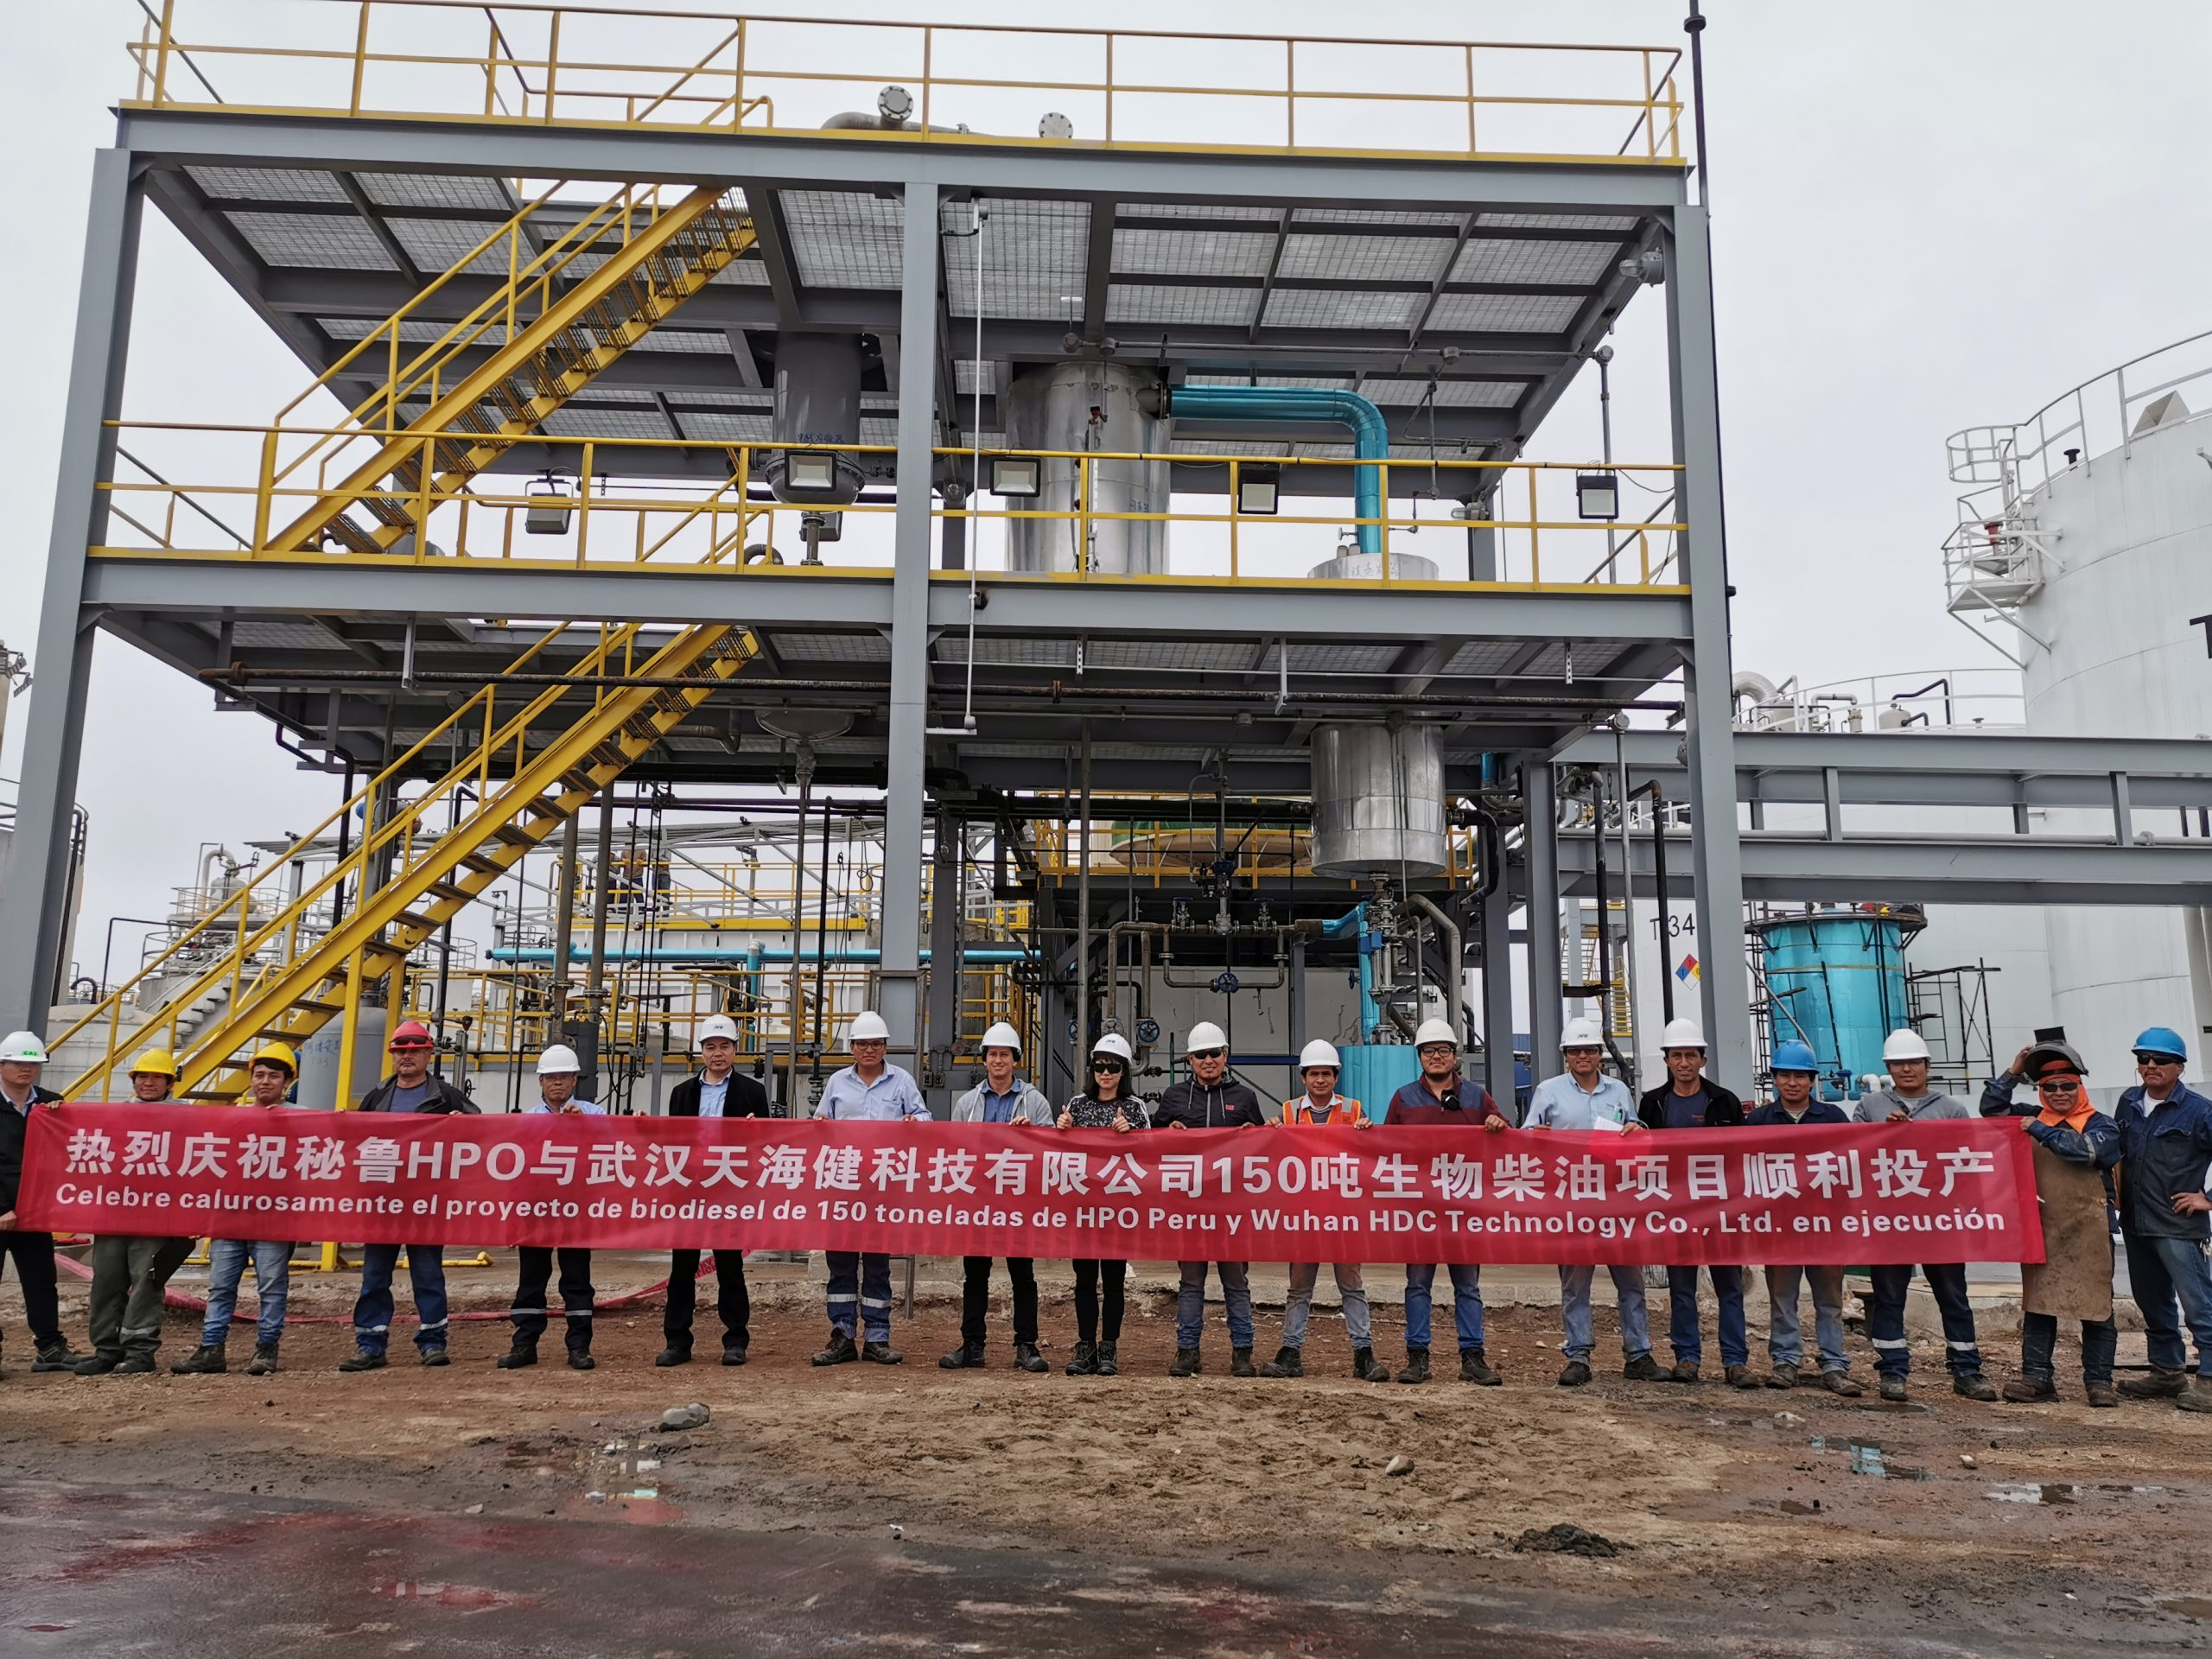 150-ton biodiesel project in Peru